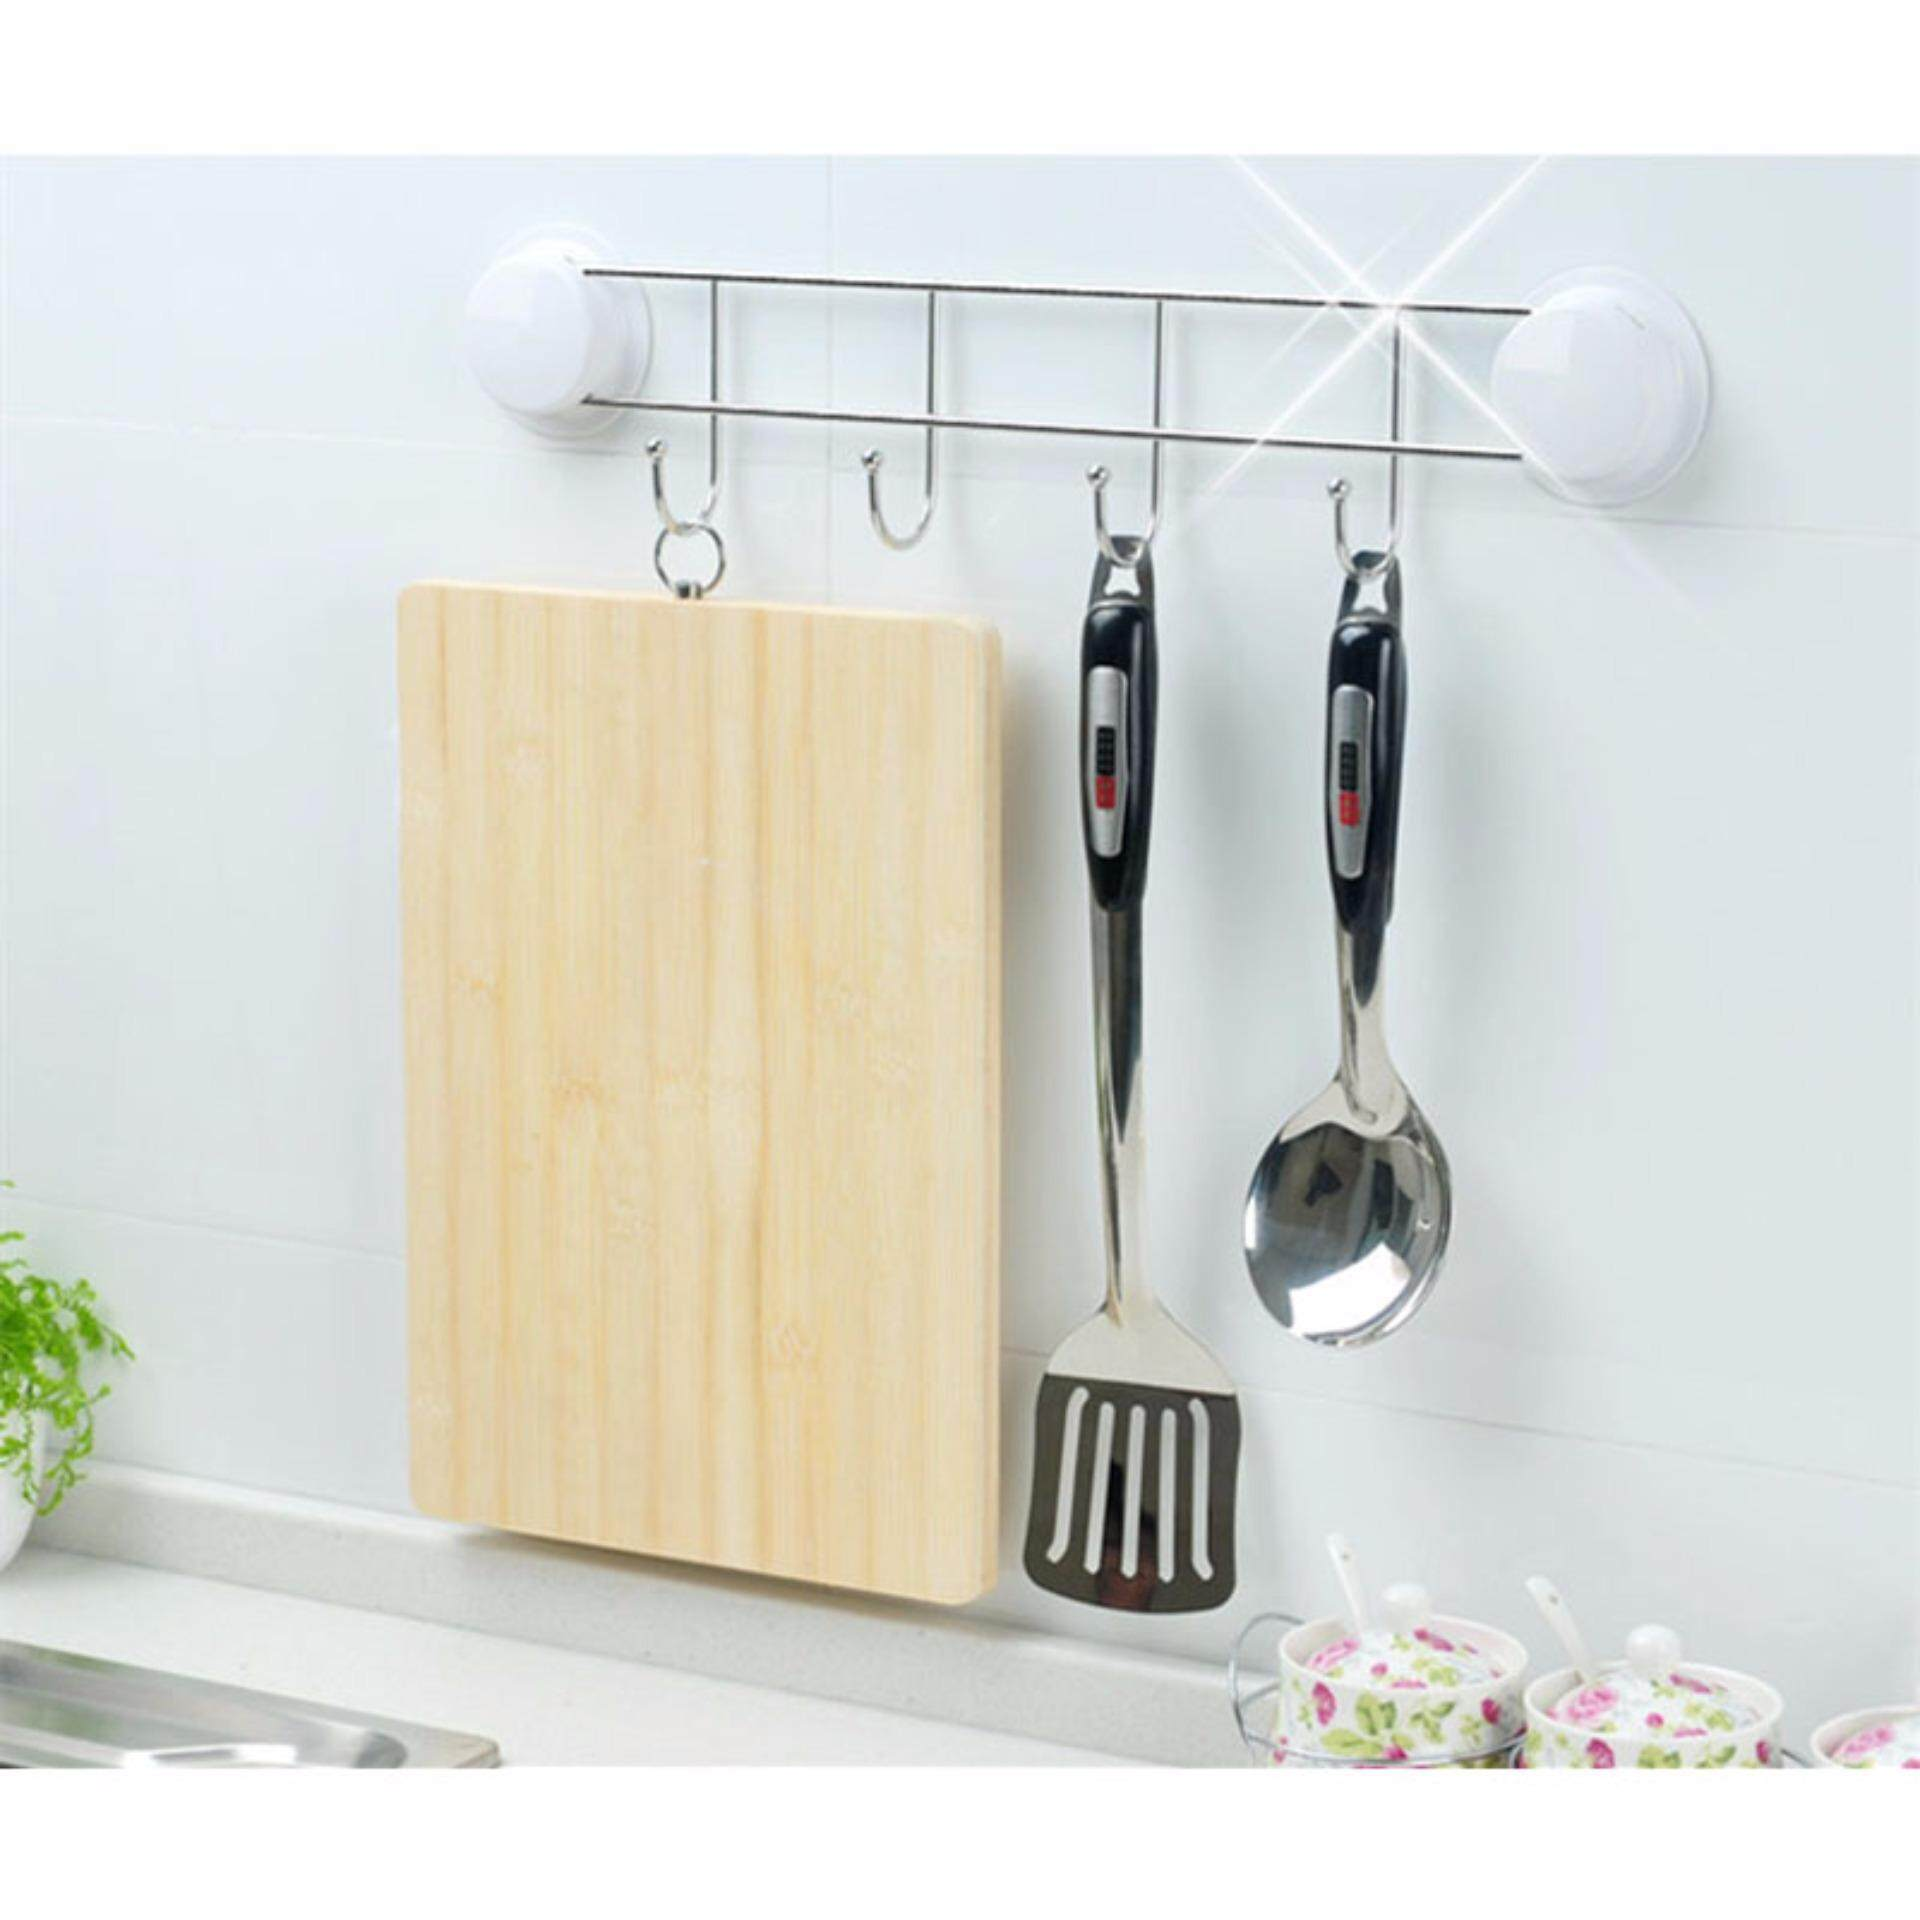 Garbath Towel Holder